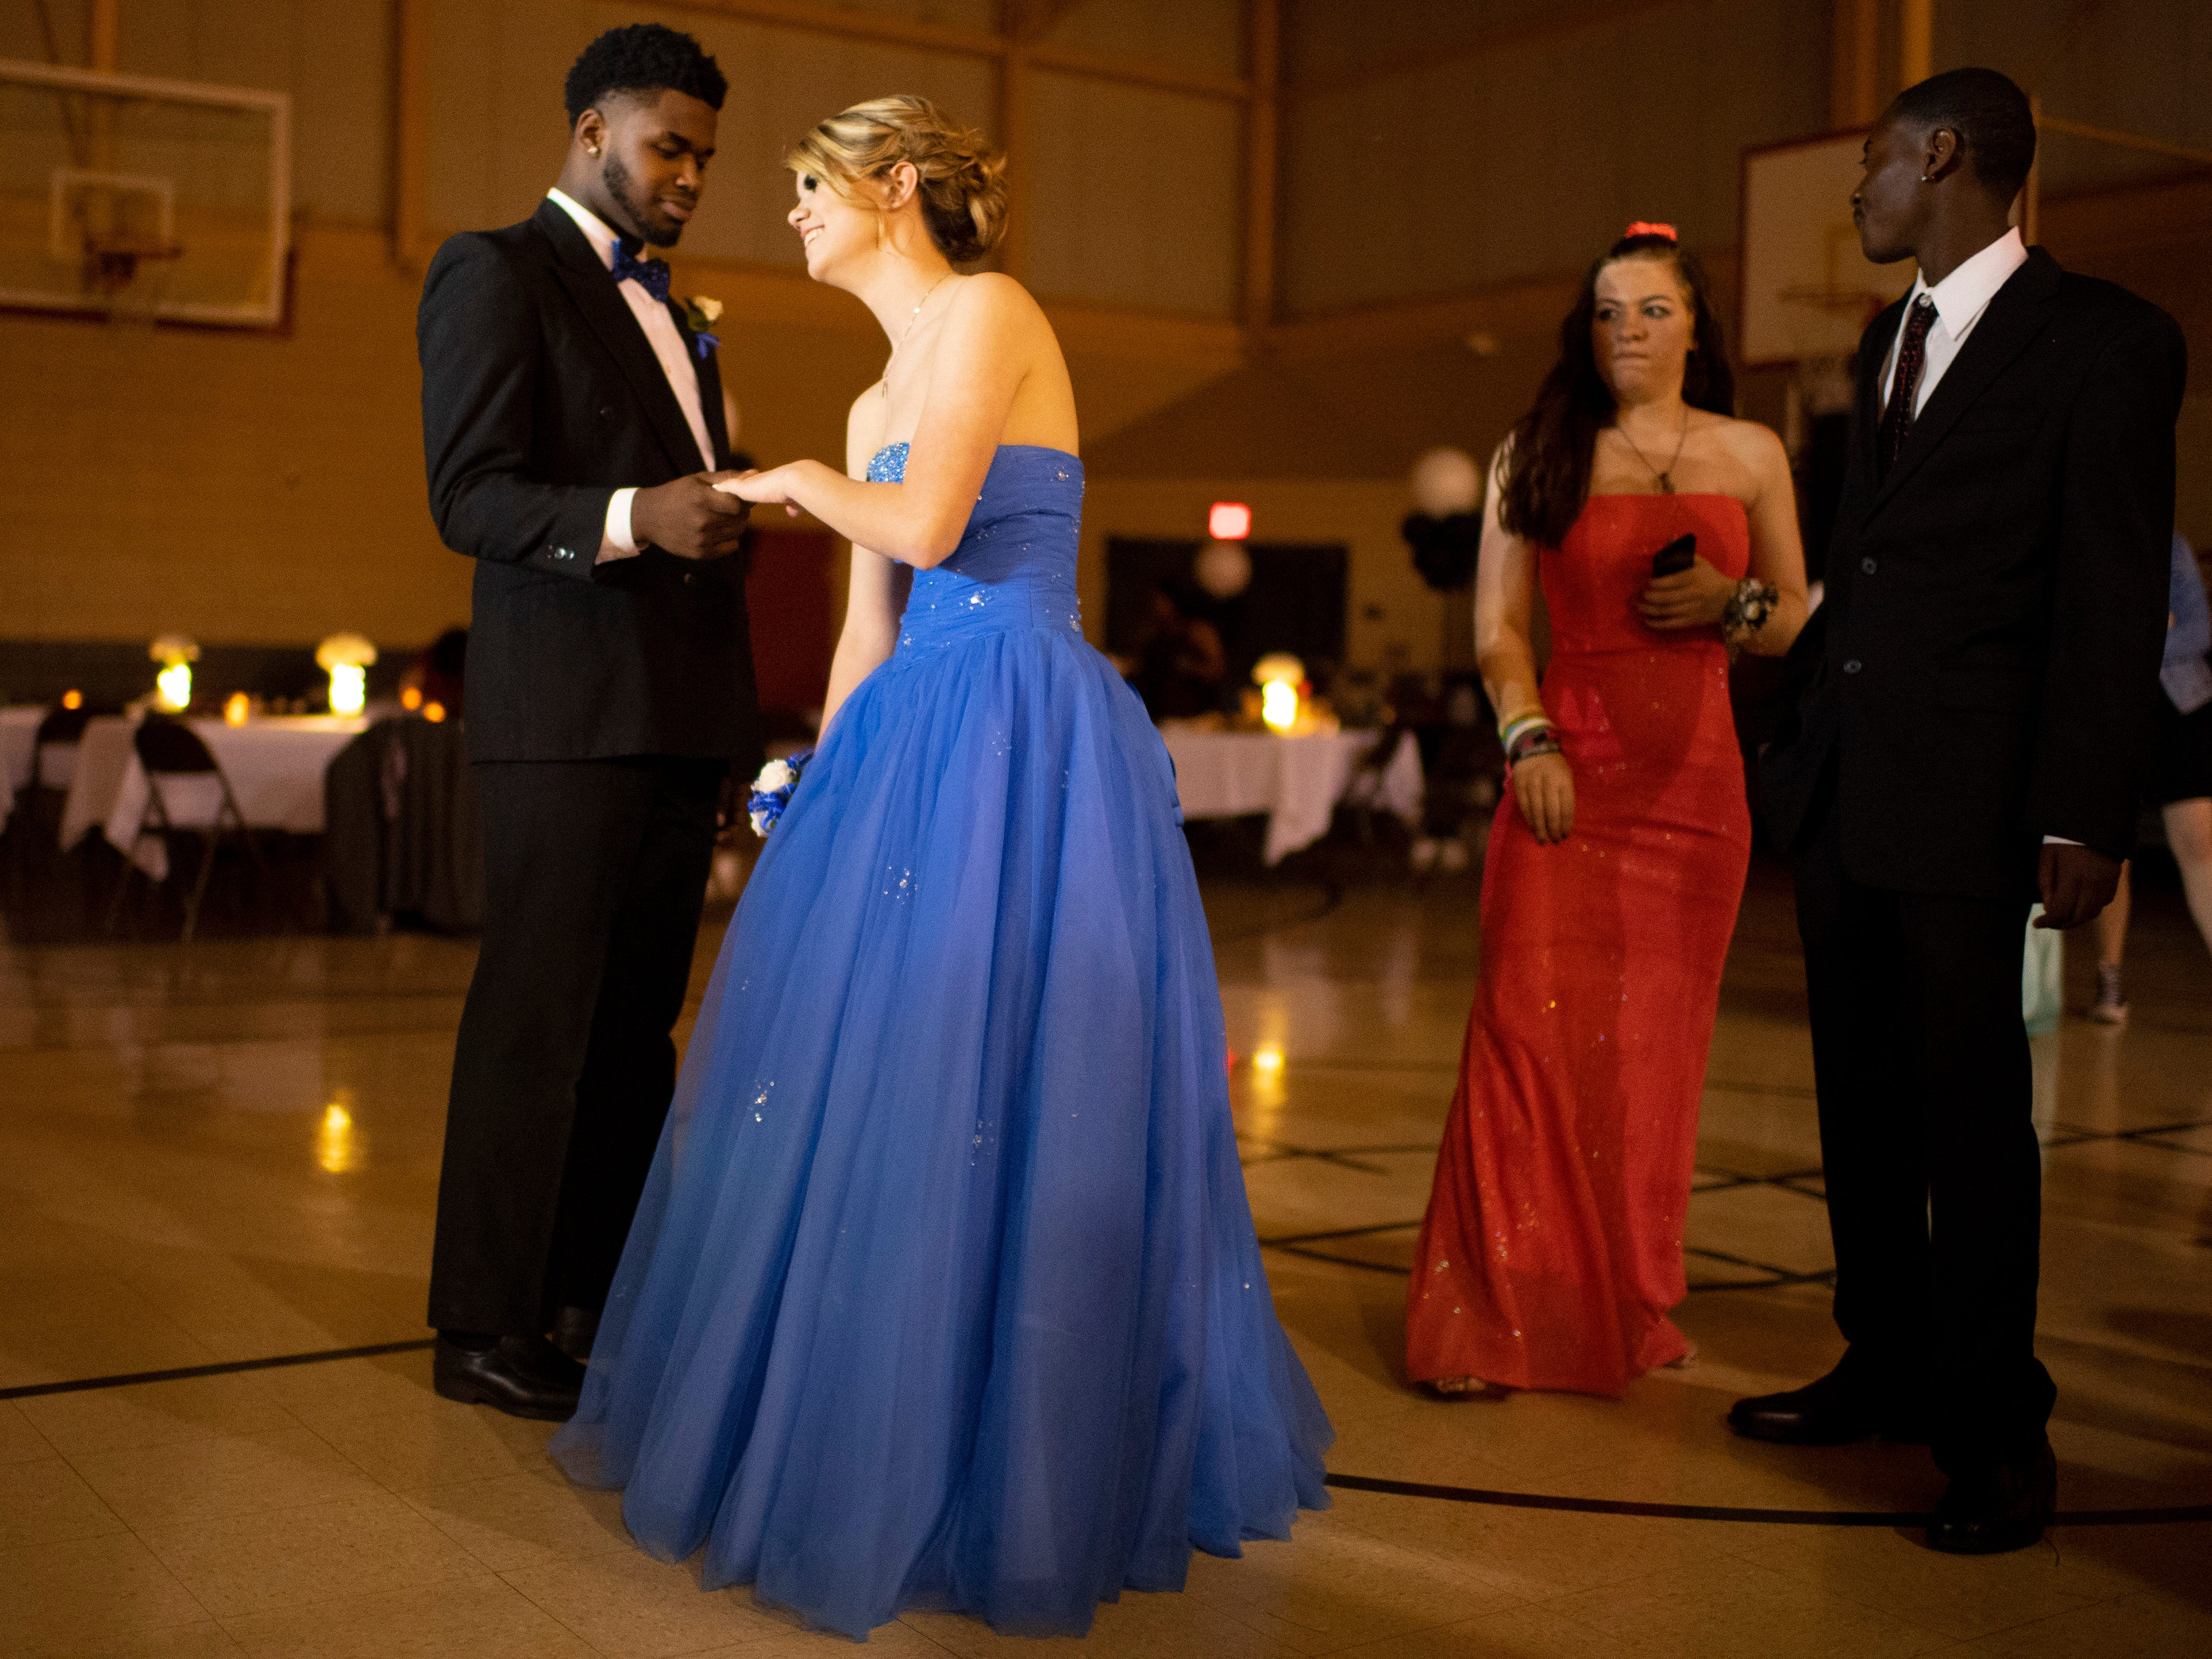 Martuis Fields, 17, left, and Alisha Smith, 17, dance at the Harwood Career Prep prom Saturday night.